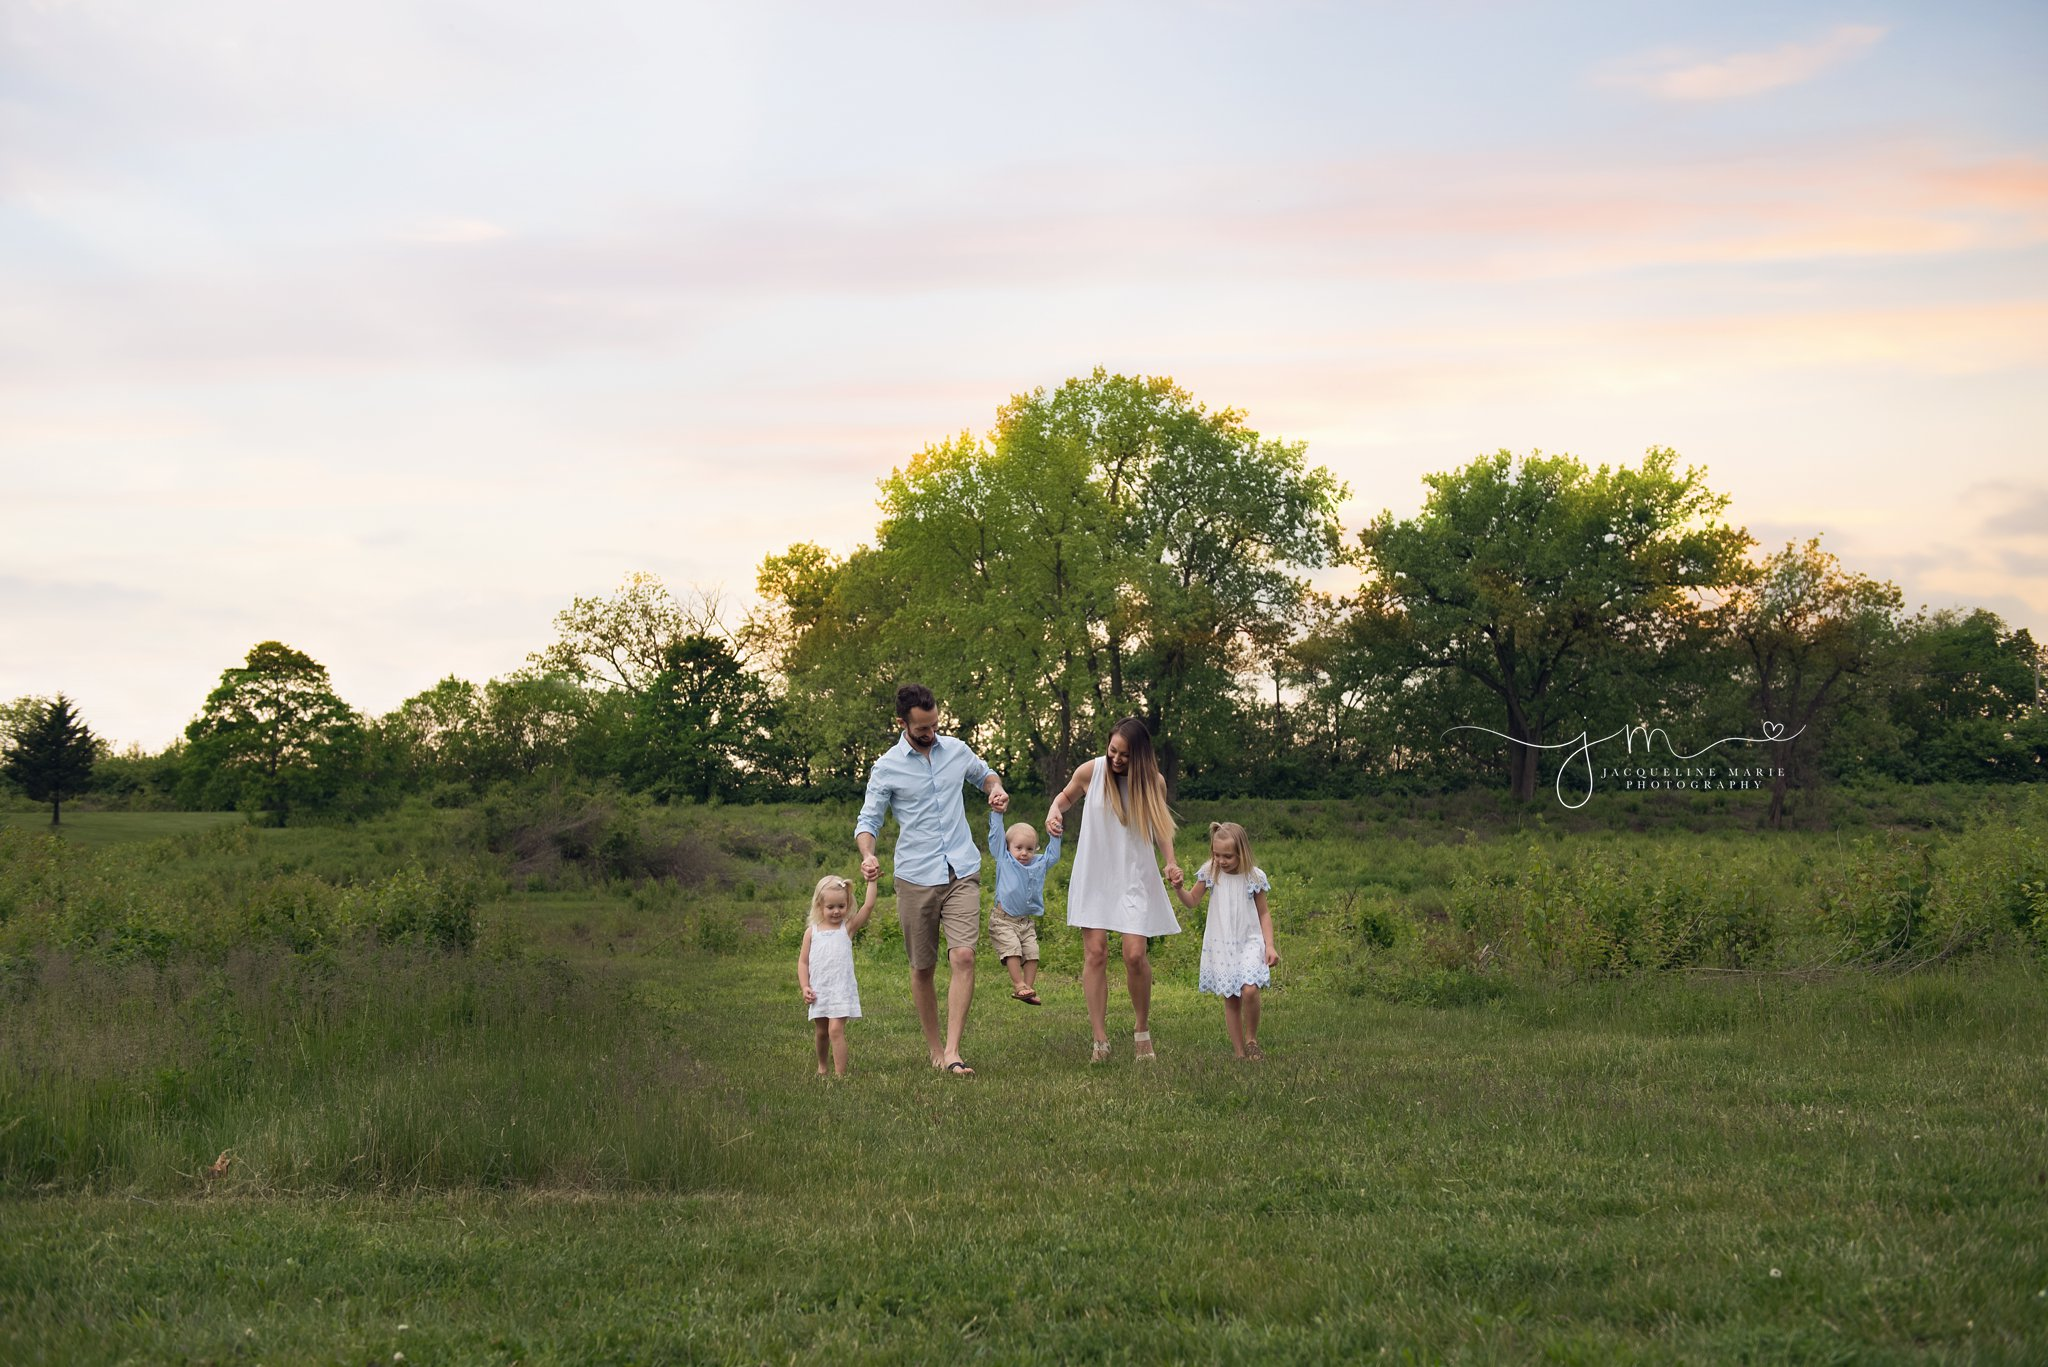 columbus ohio family of five walks at sunset in a park holding hands for family photography session with jacqueline marie photography